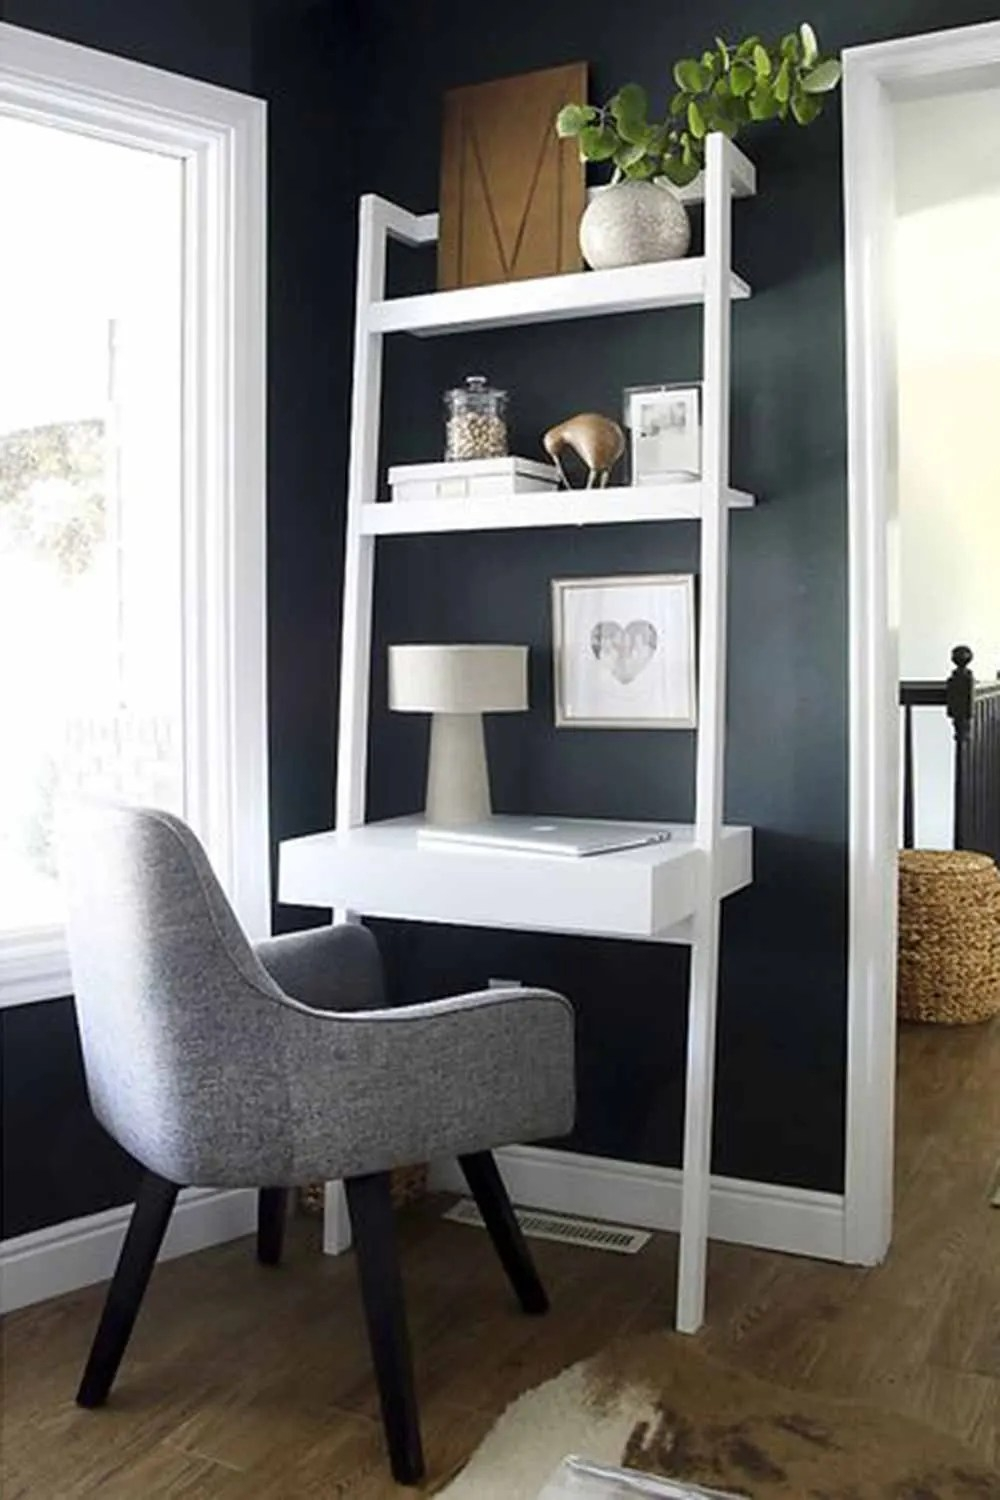 Space Saving Furniture 5 Ladder Desks Perfect For Small Spaces   Ladder Design For Small Space   Stairway   Glass   Modern   Two Story House Stair   Limited Space